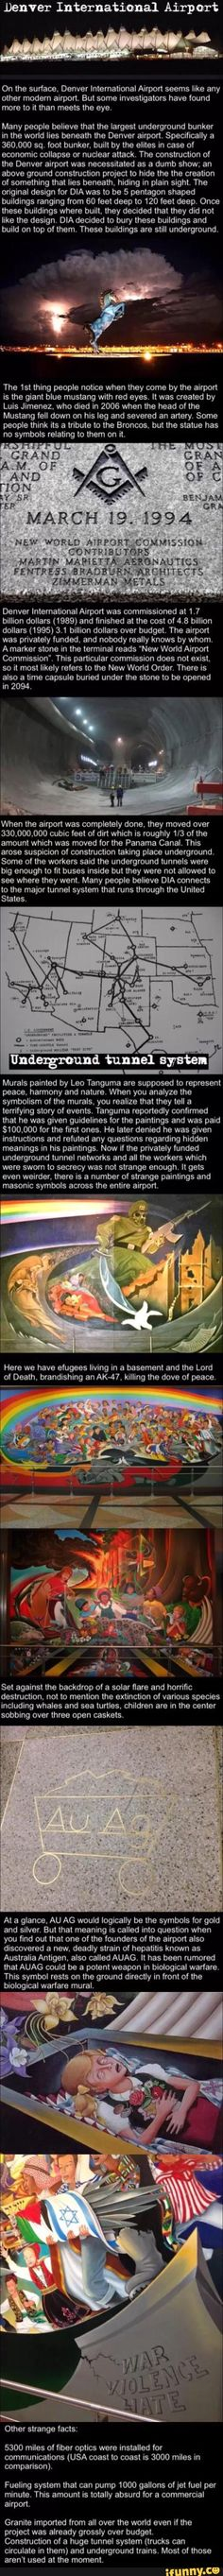 Does the airport contains a series of murals symbolizing the Illuminati plan for genocide?